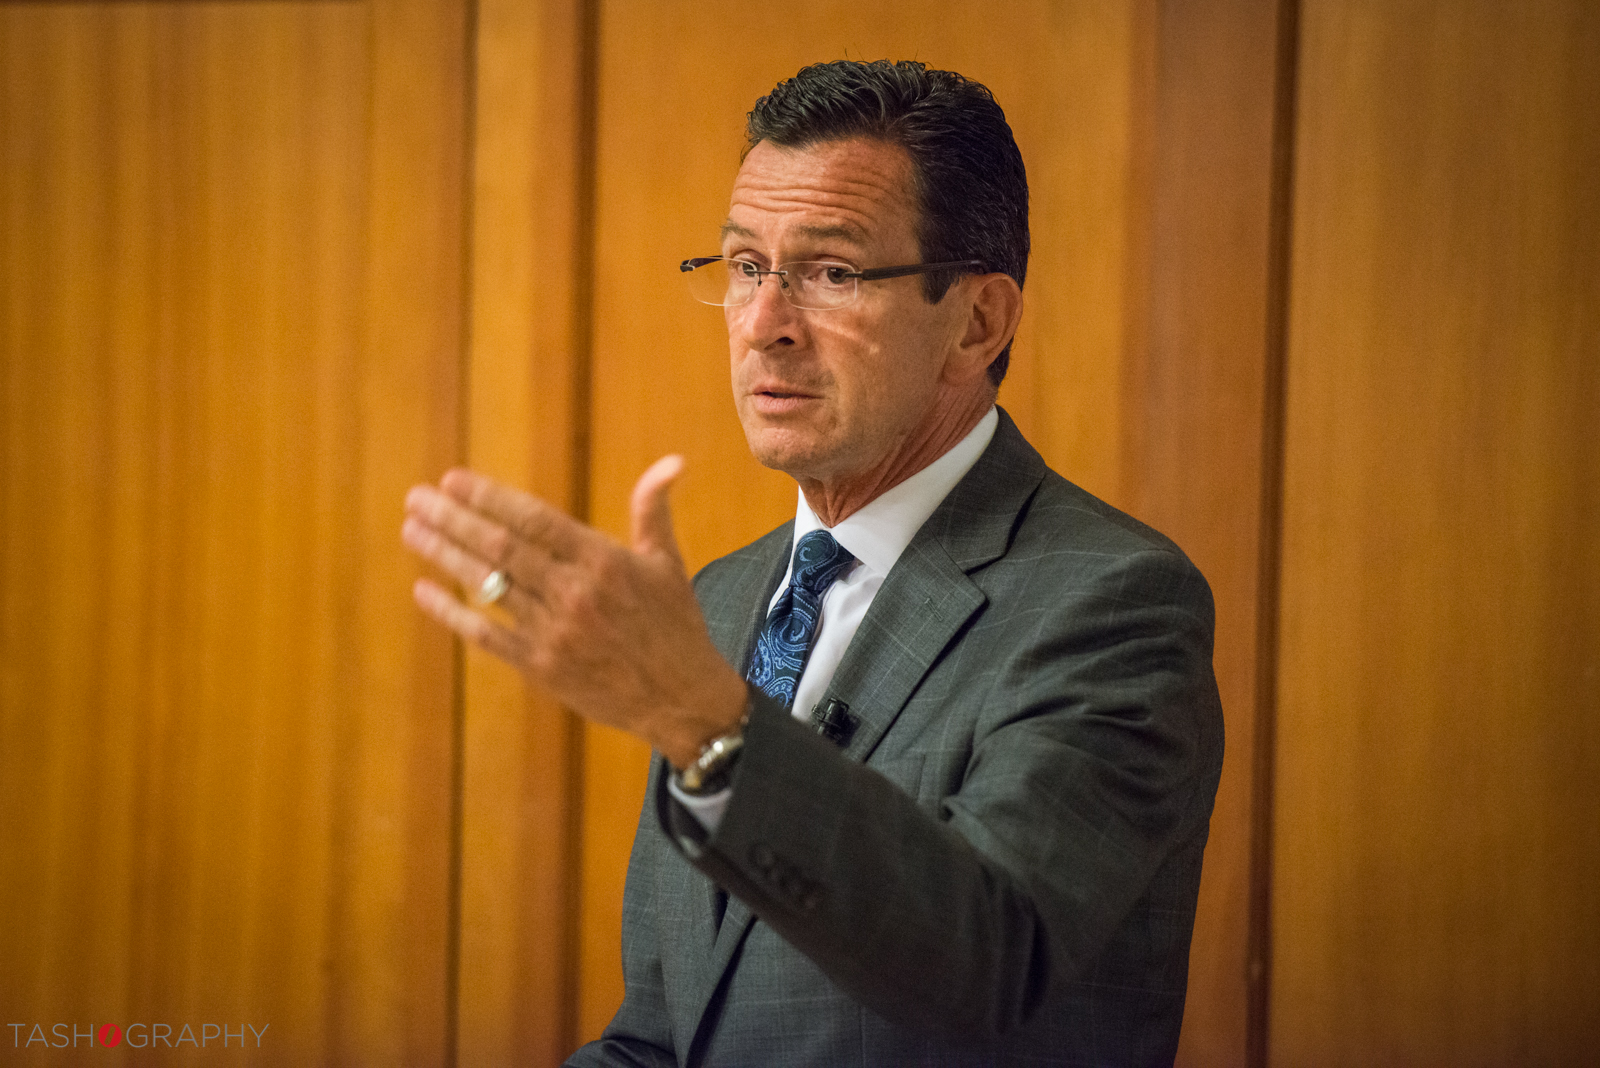 Governor Malloy